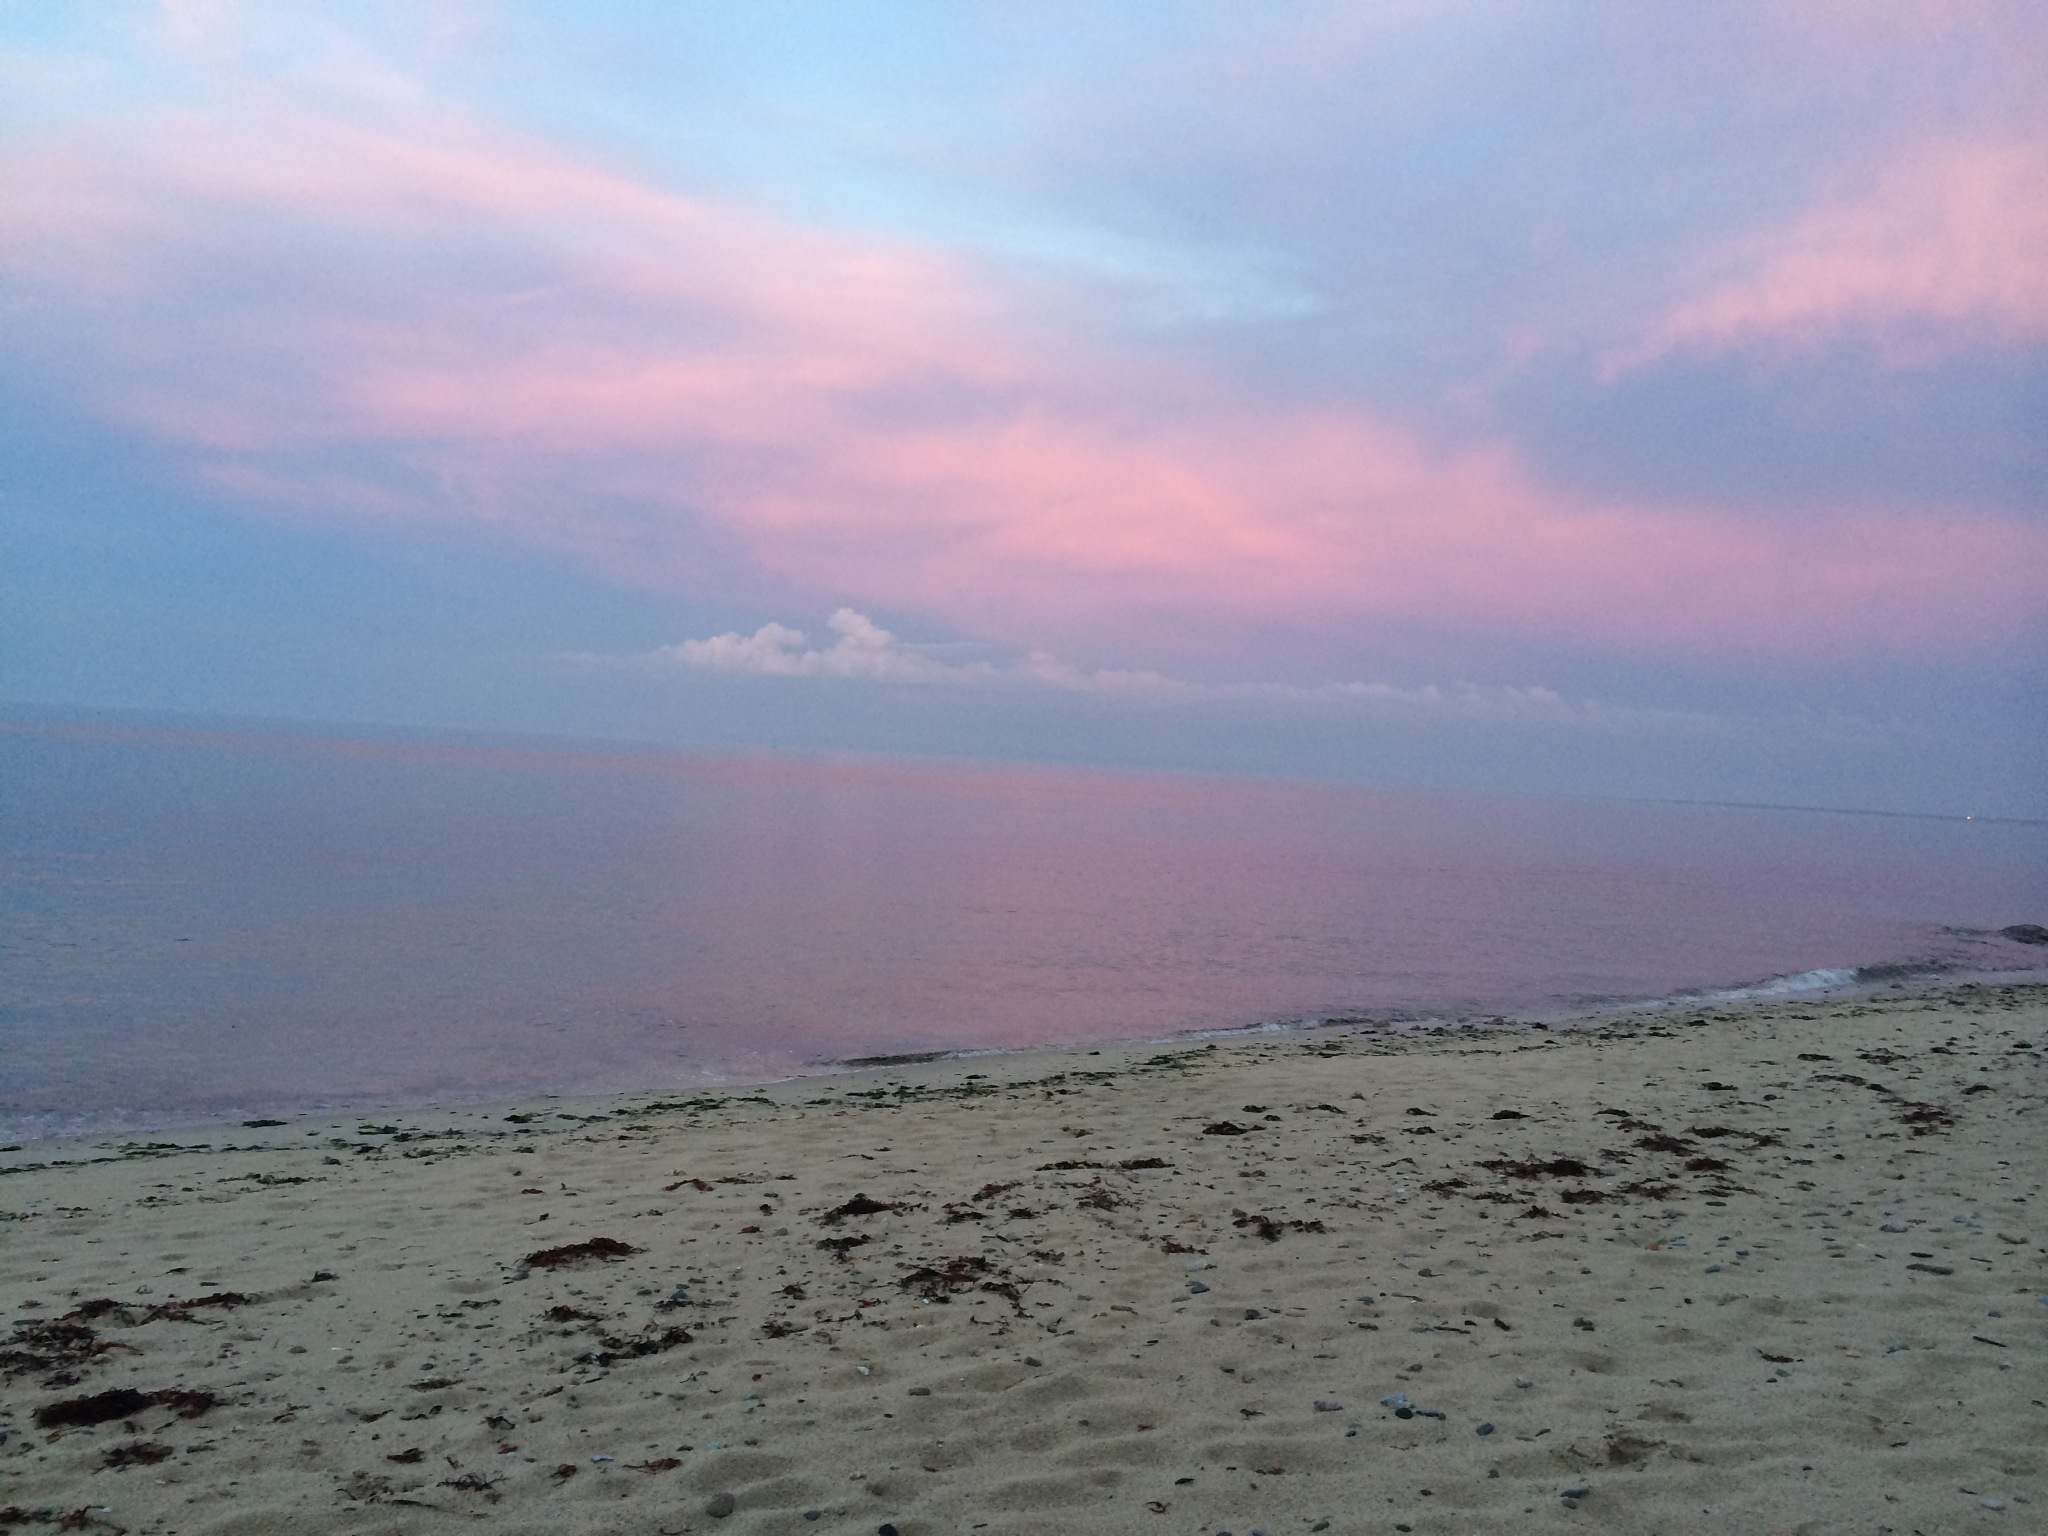 Sunset sky on the Beach by Patricia McCorry